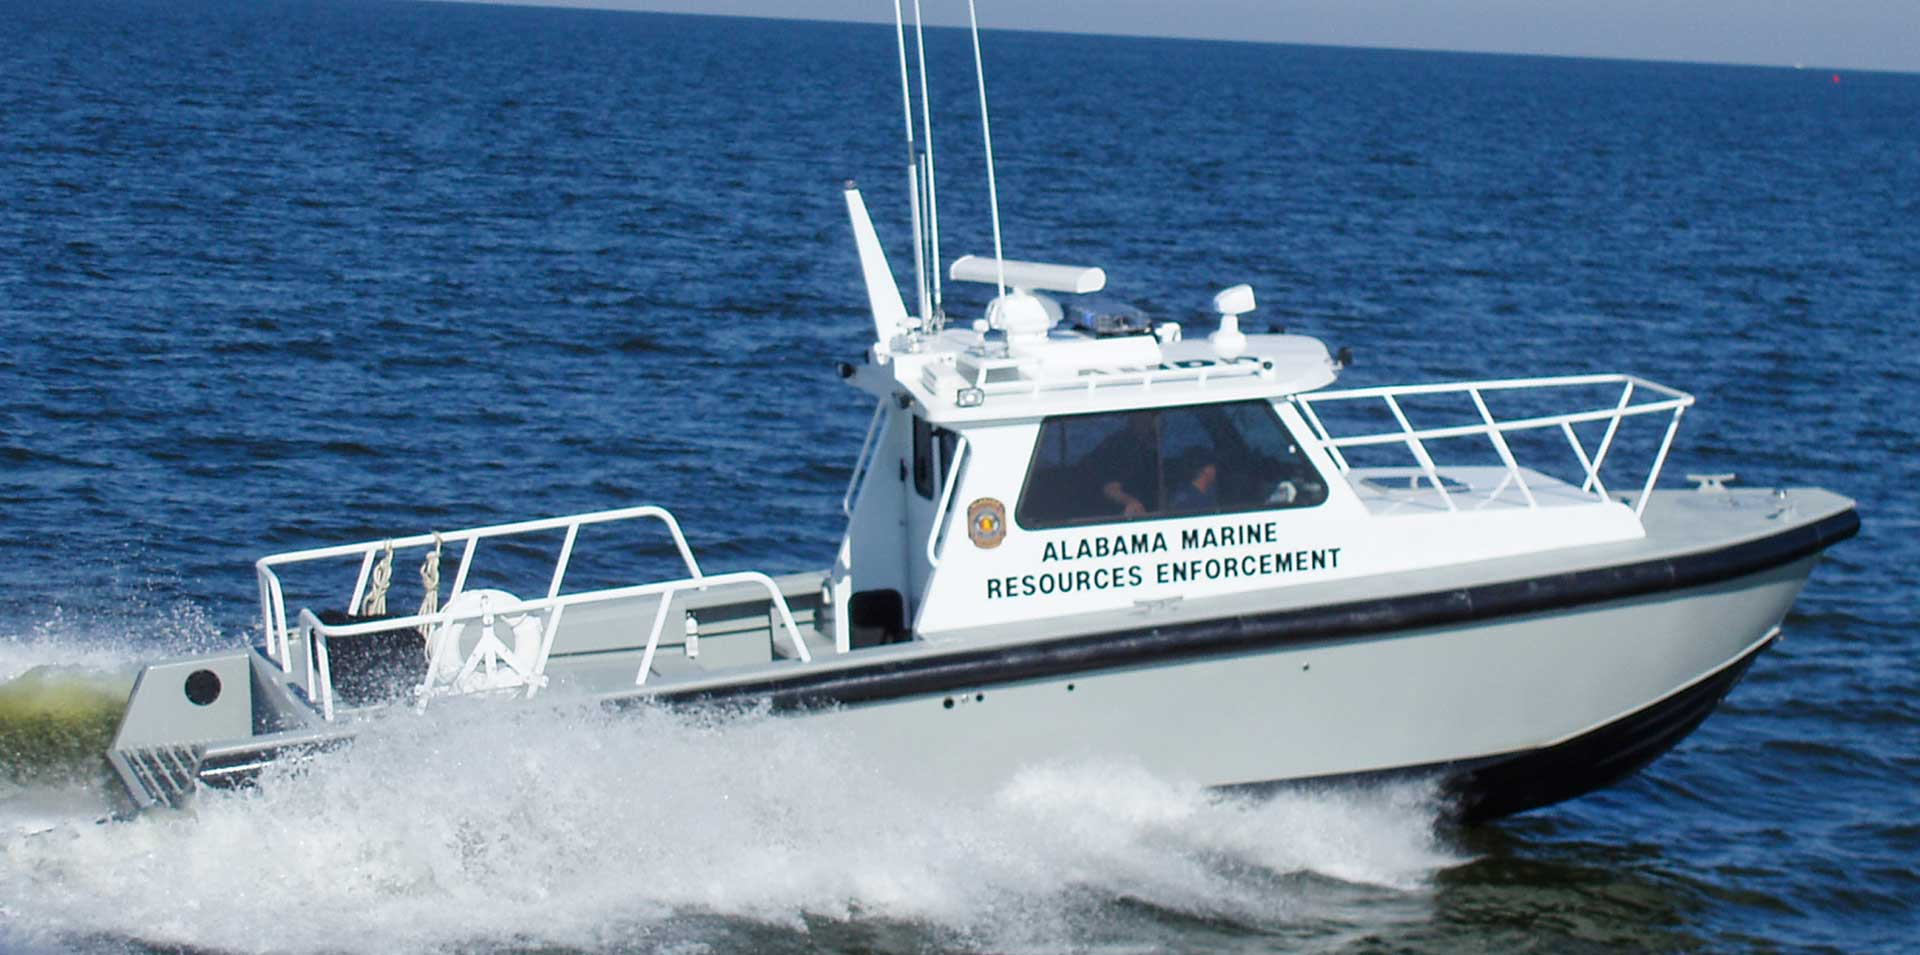 Silver Ships Endeavor Series Alabama Marine Resources Enforcement patrol boat